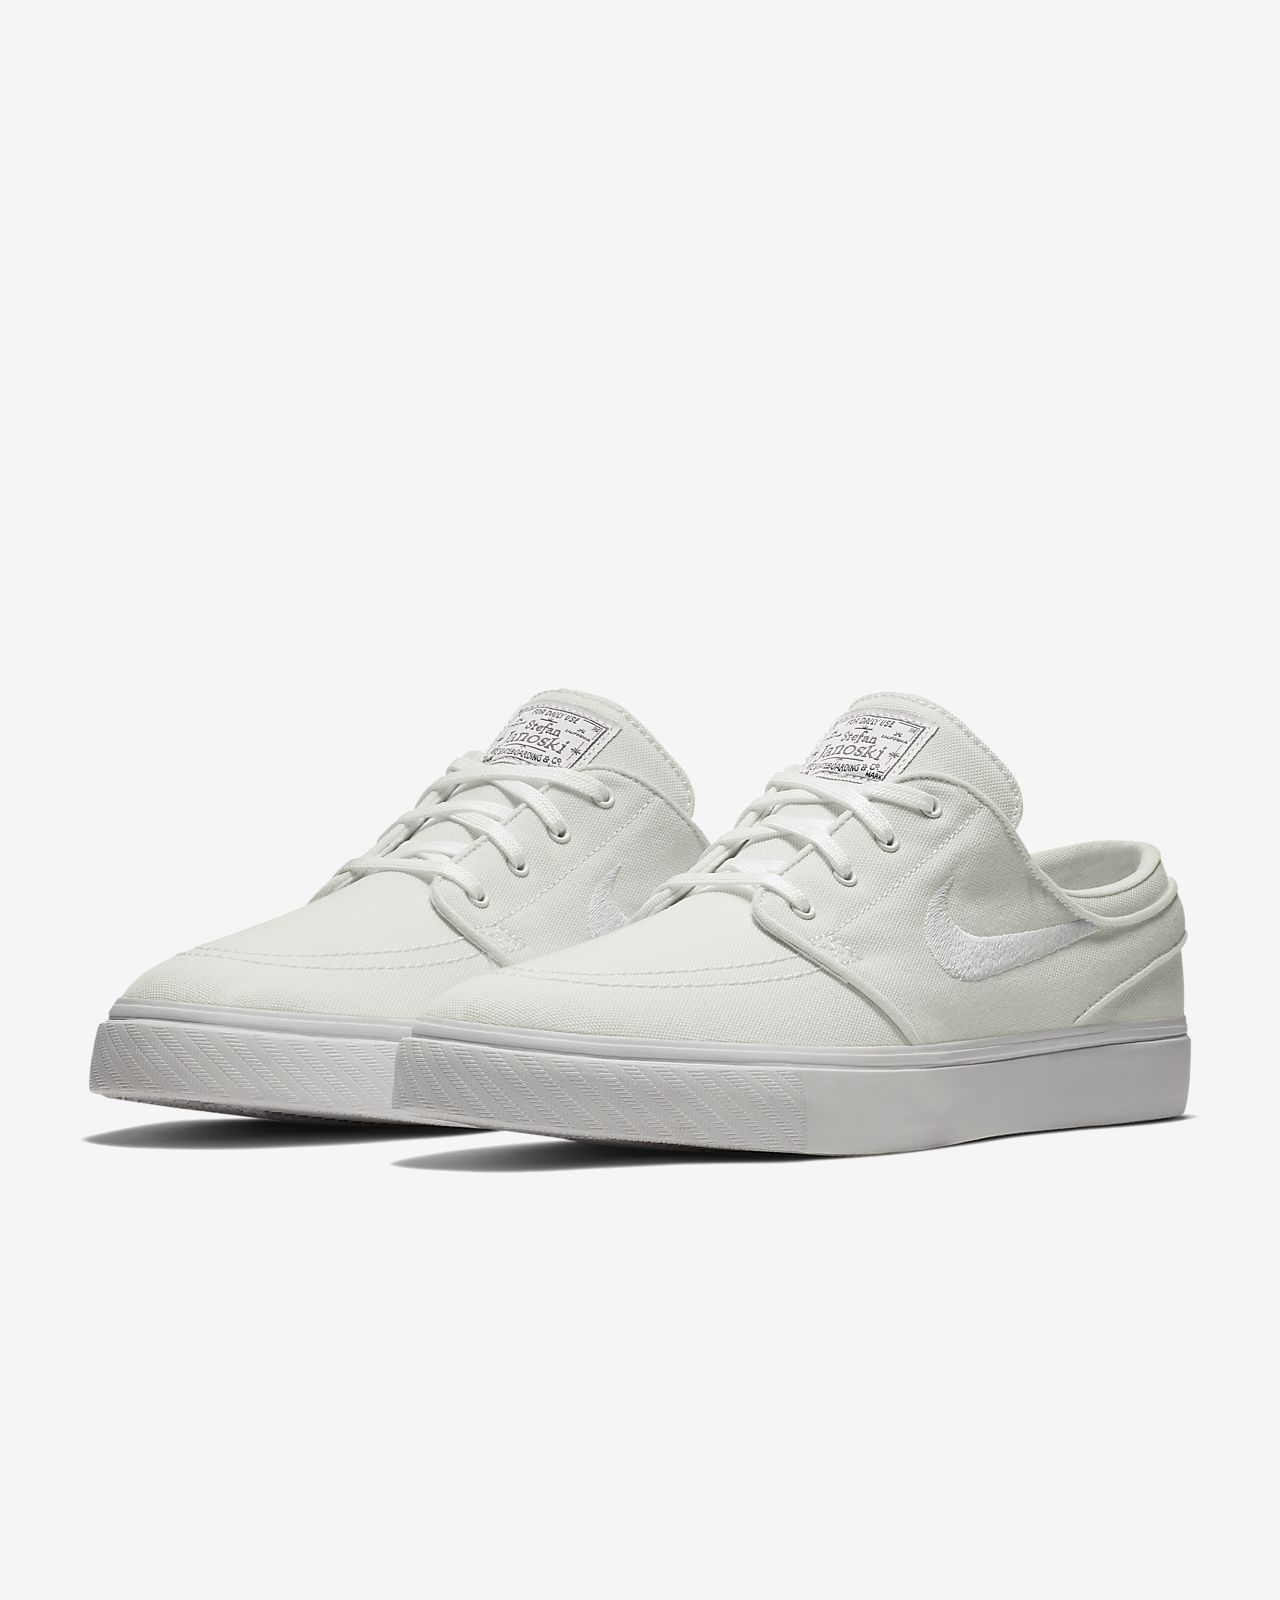 buy online cfe88 fb8d2 ... Nike SB Zoom Stefan Janoski Canvas Men s Skate Shoe